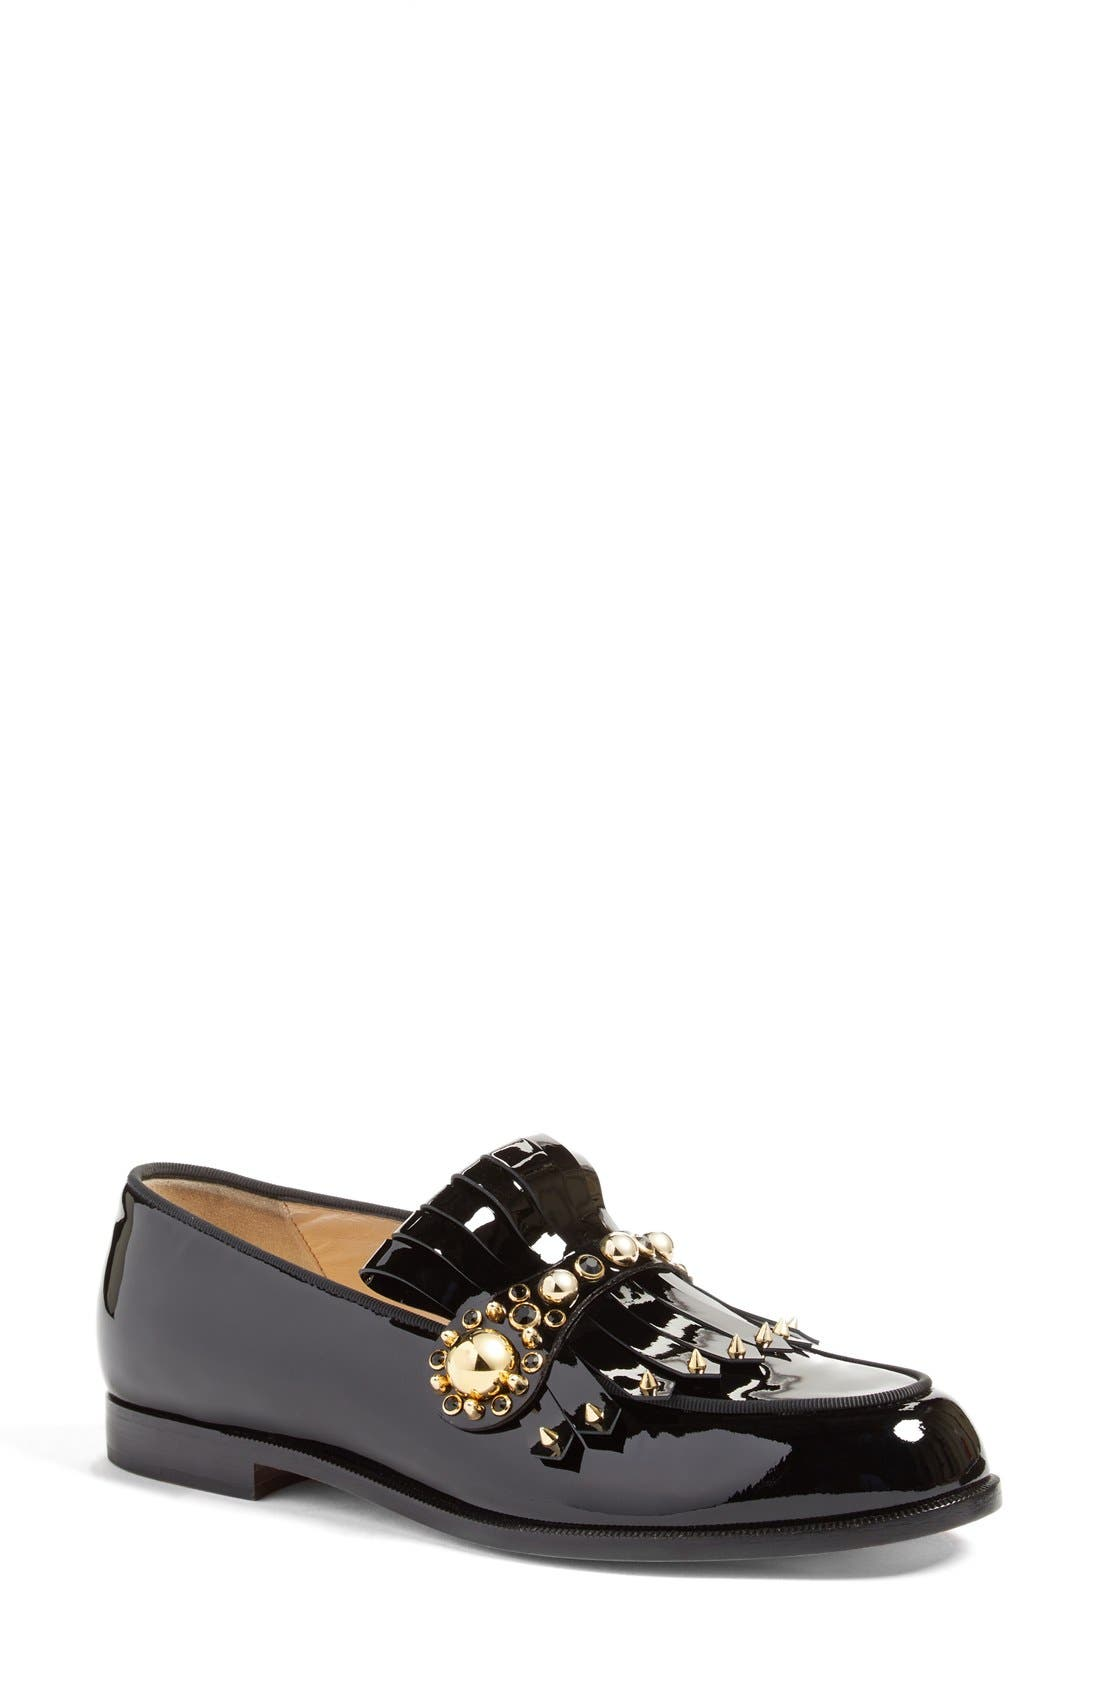 Christian Louboutin Octavian Embellished Kilted Loafer